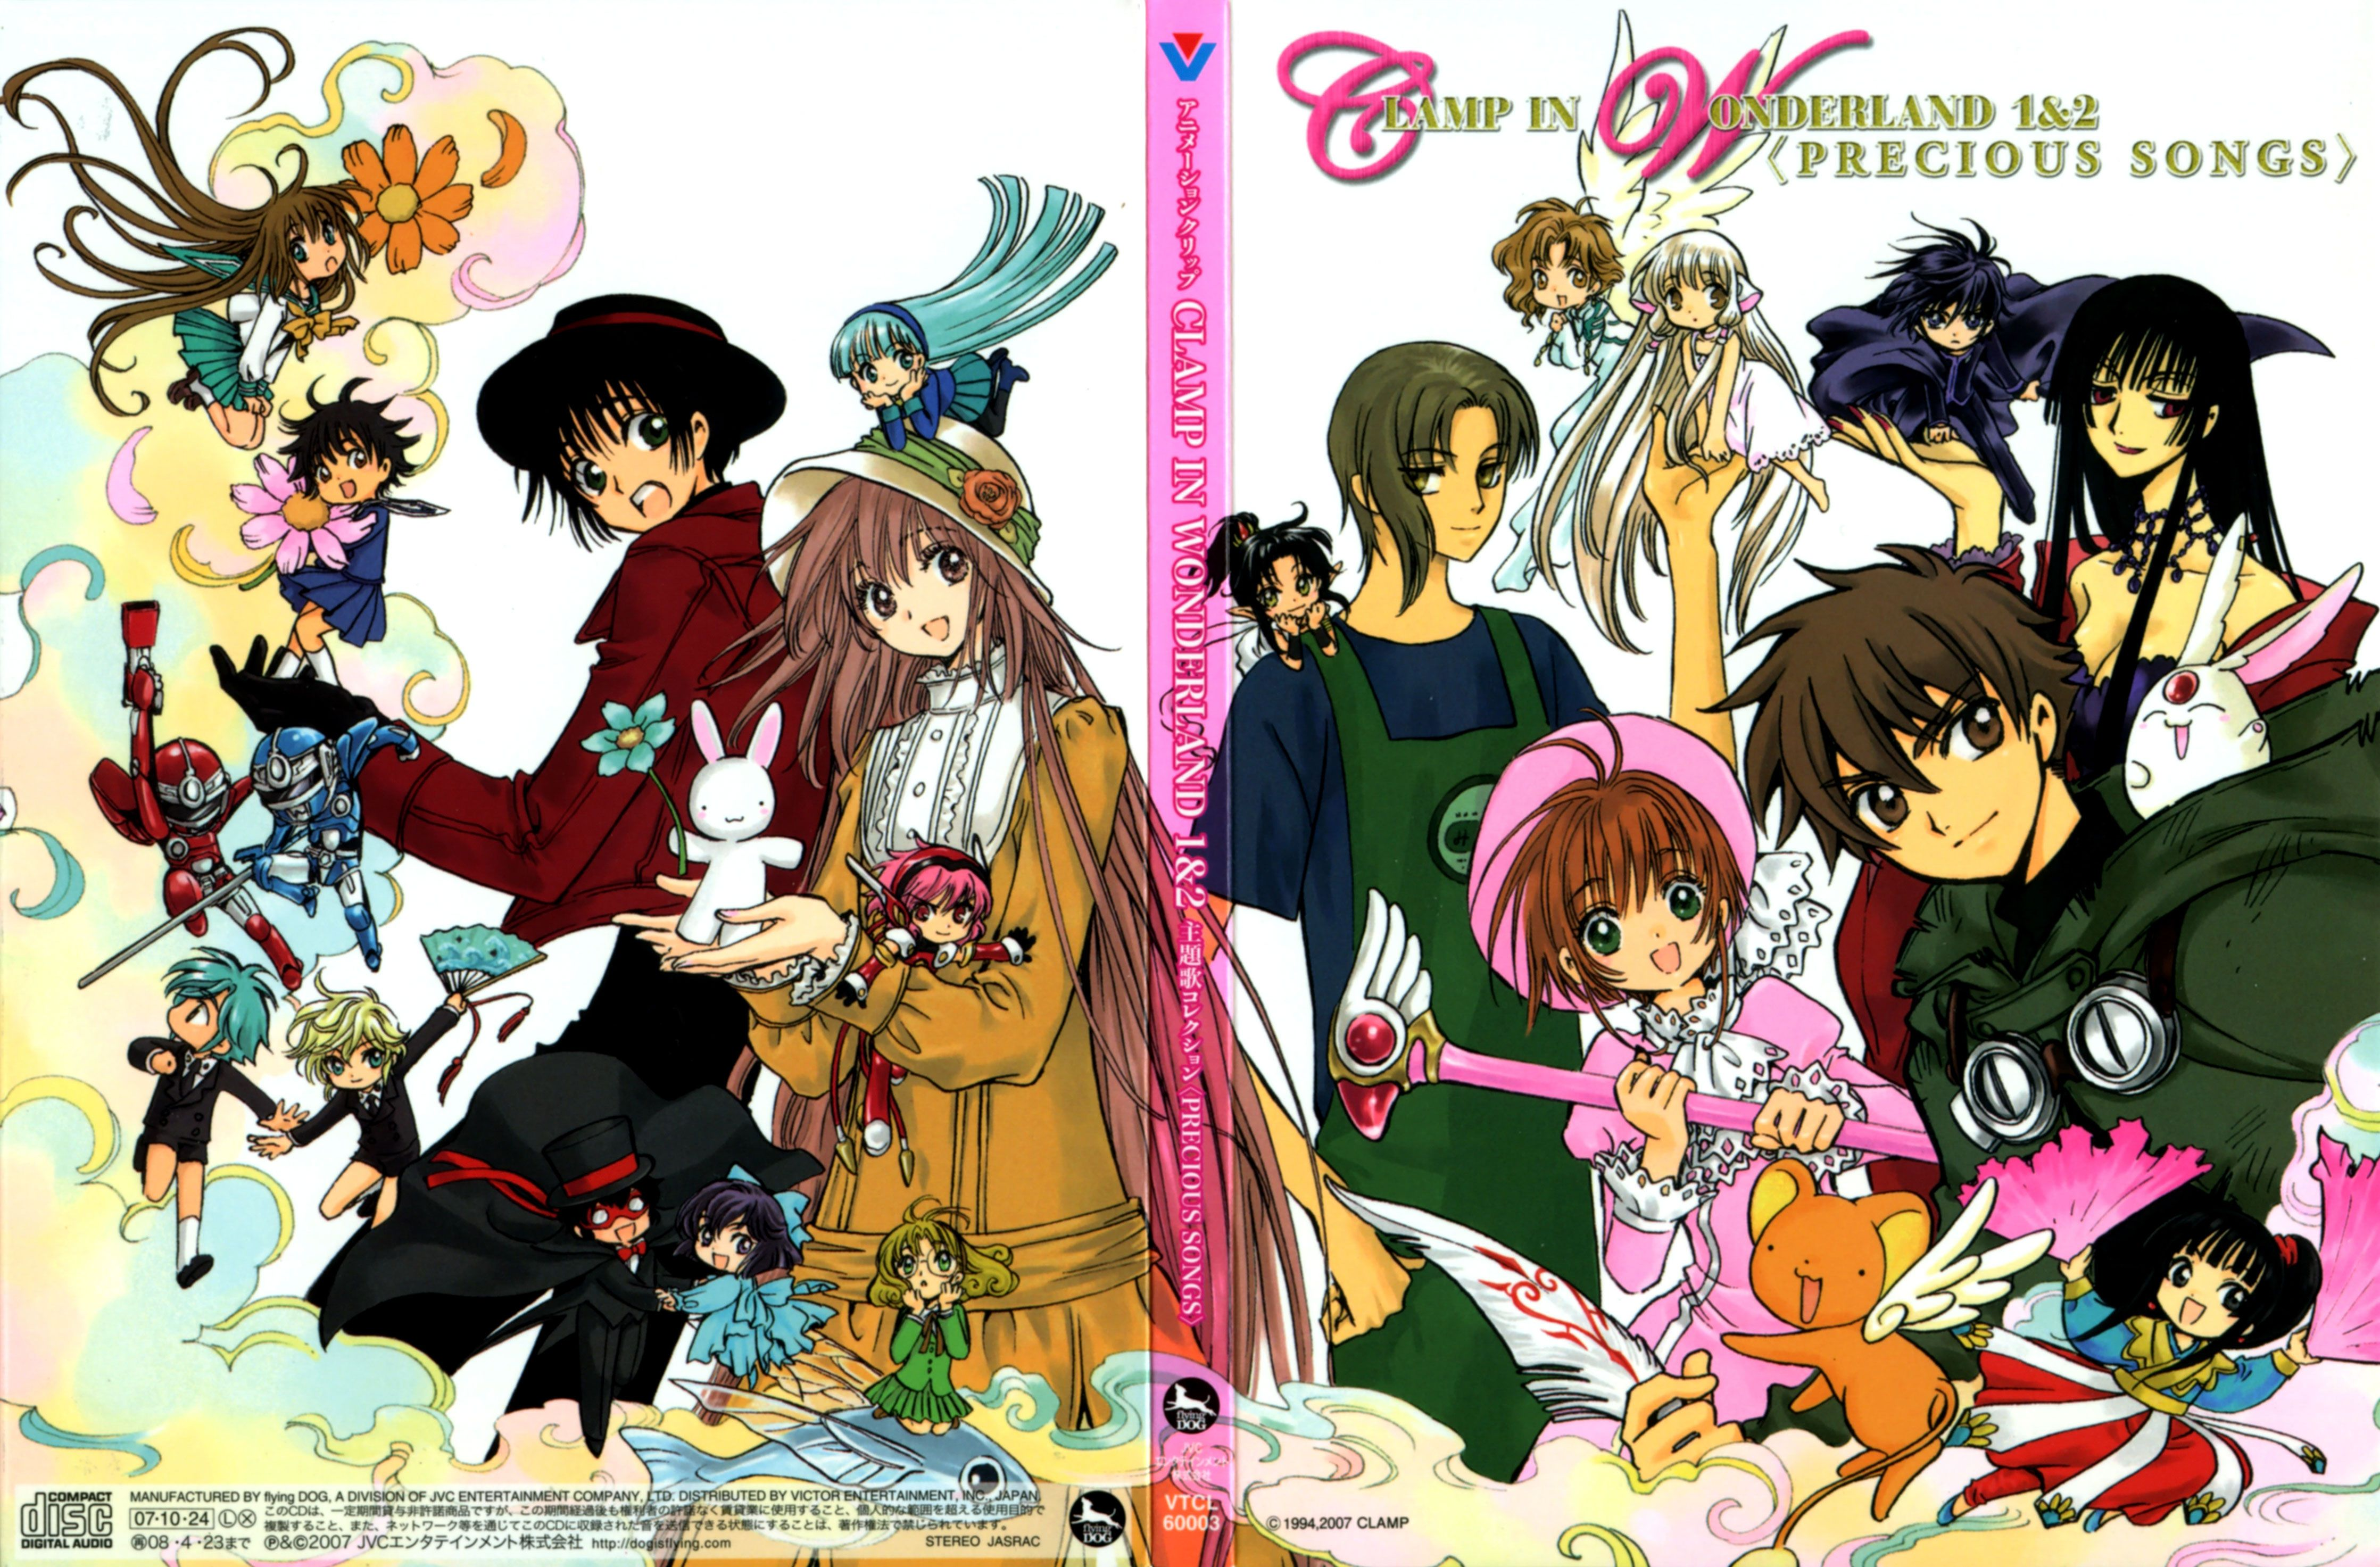 Pin by Oi Ling Wong on F Clamp Anime, Wonderland, Book art